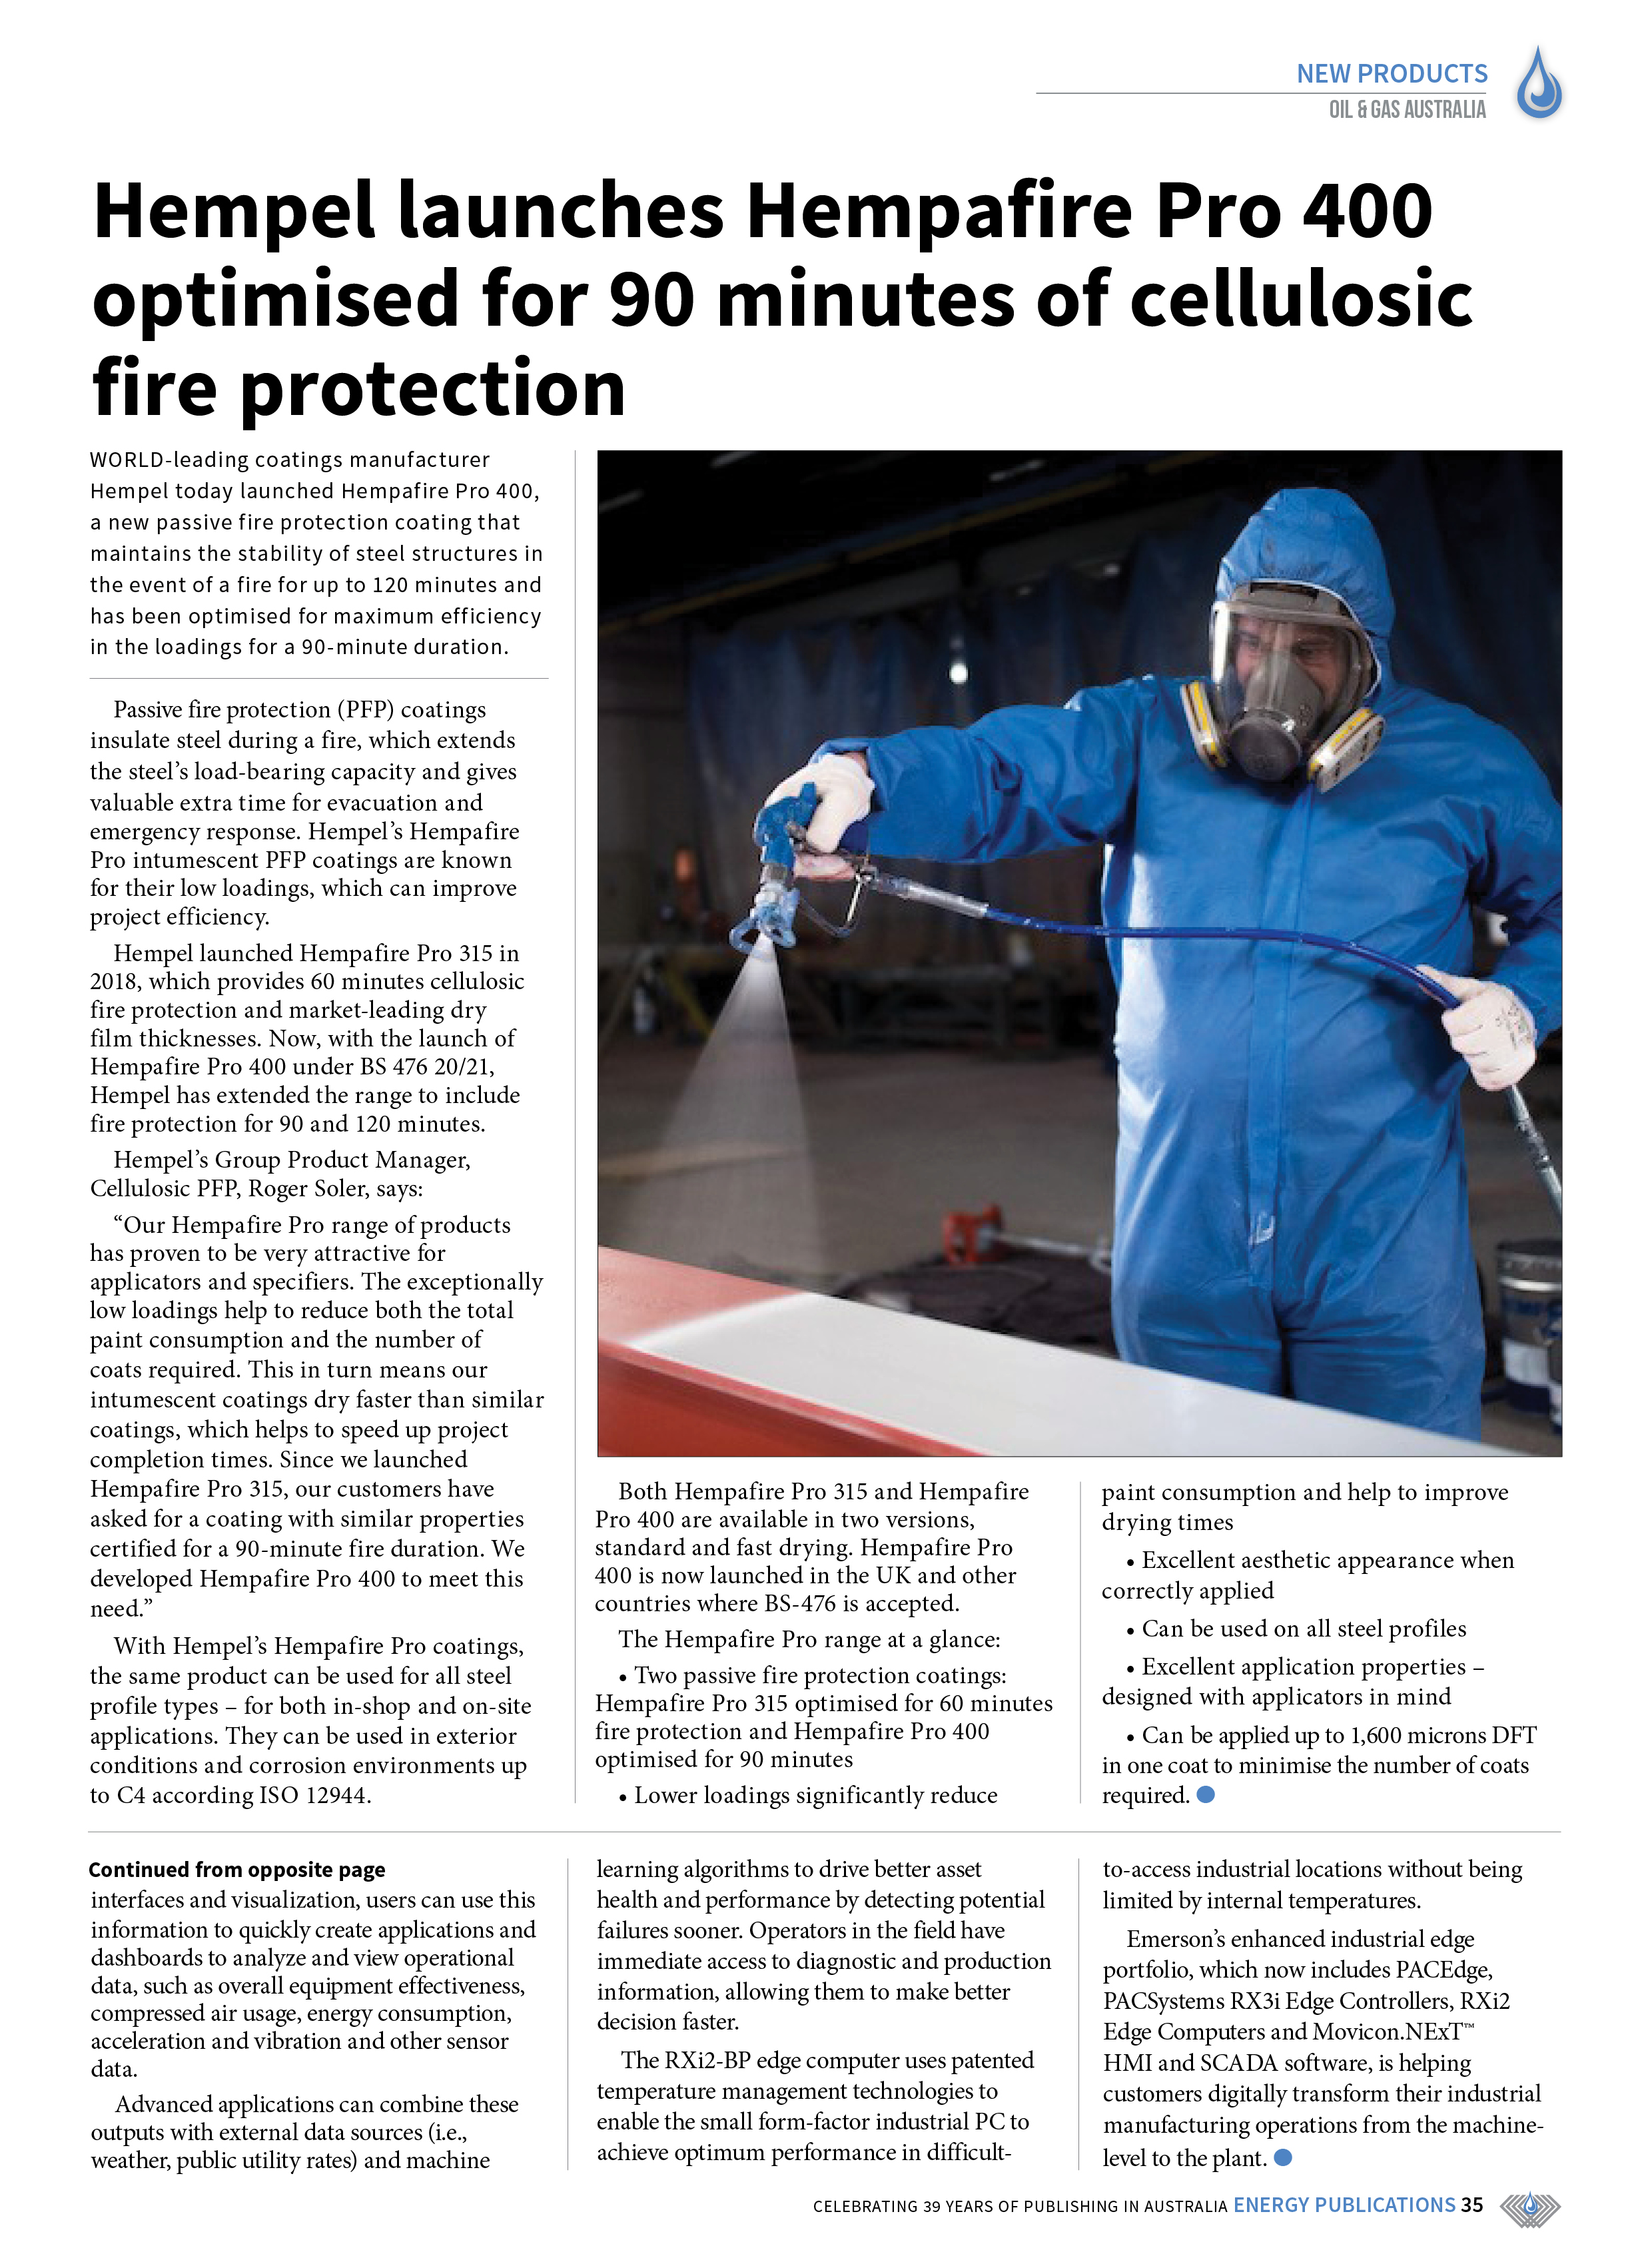 Oil & Gas Australia – May 2021 – Page 37